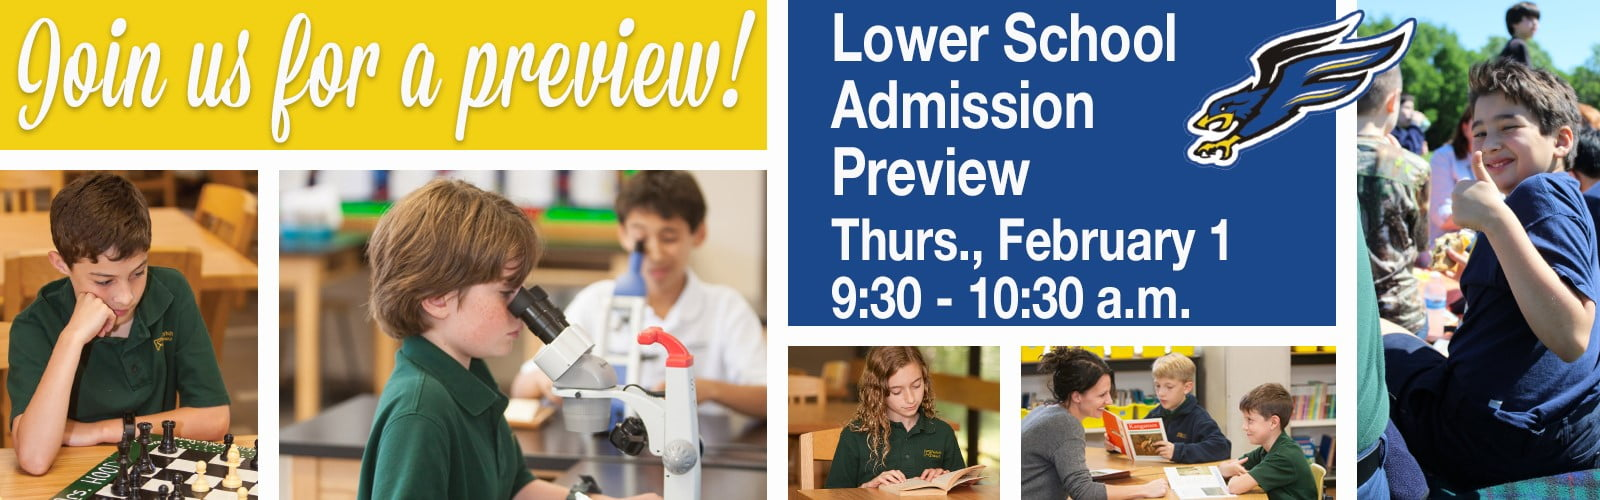 Lower School Preview Banner 2.1.2018